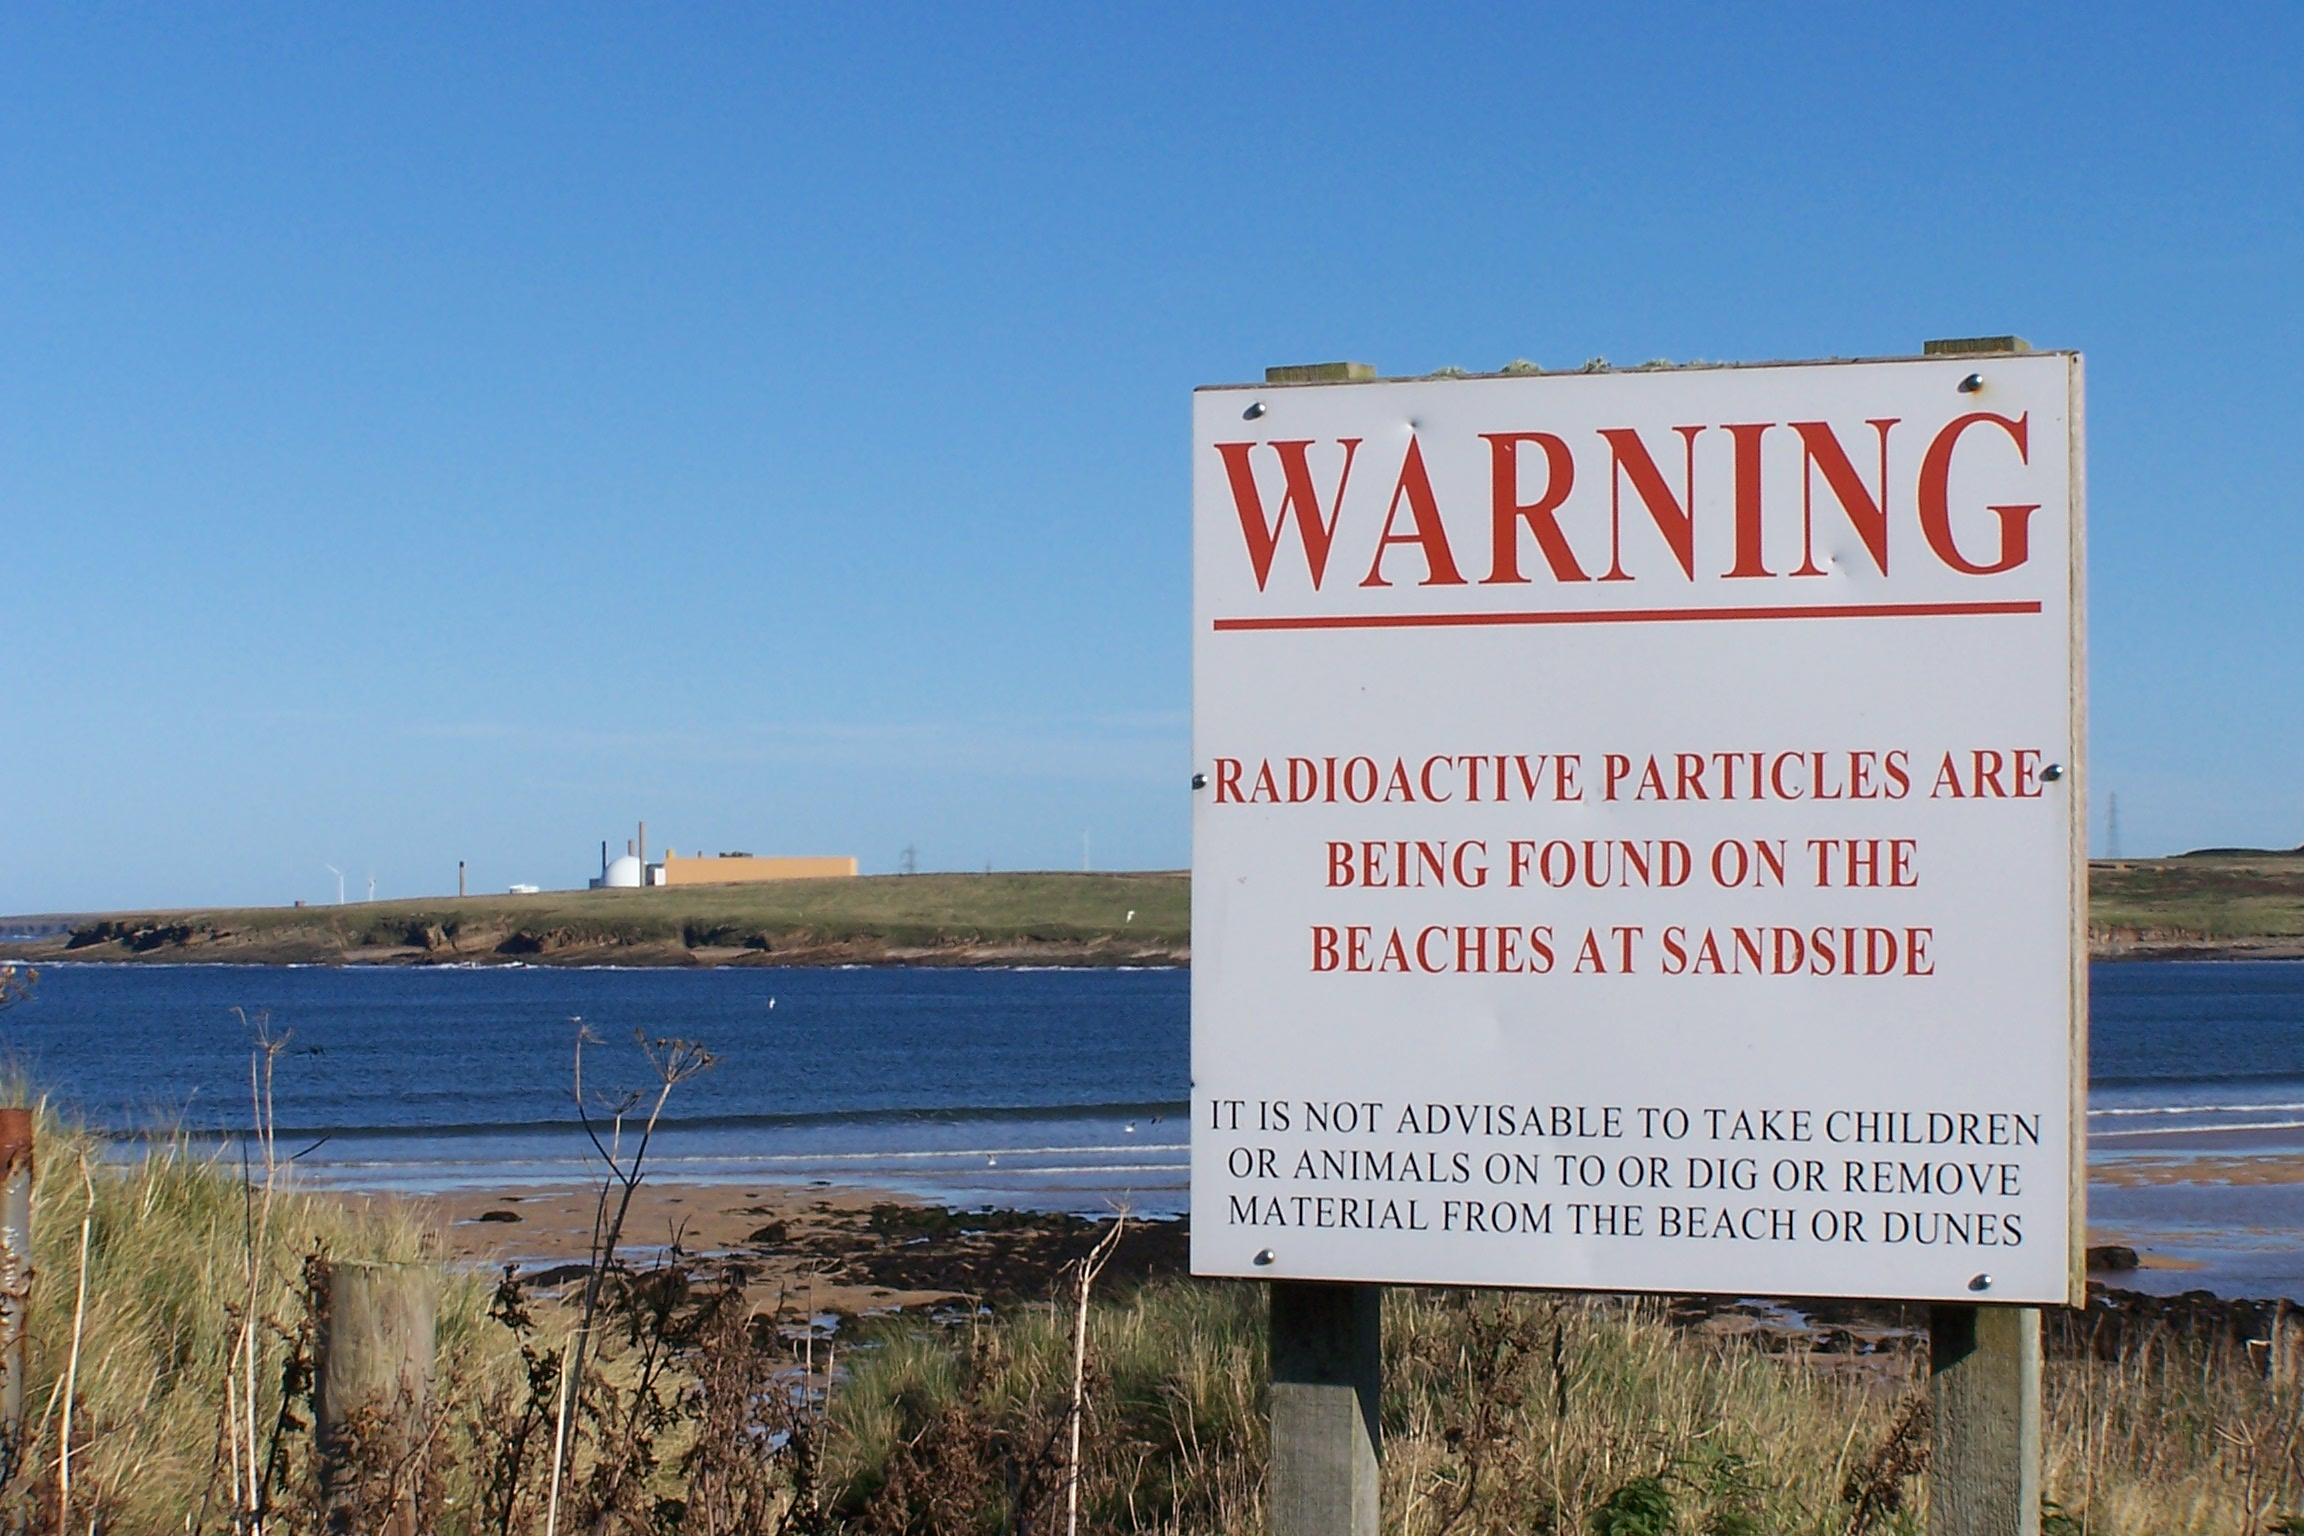 This sign from a British beach could become commonplace in California